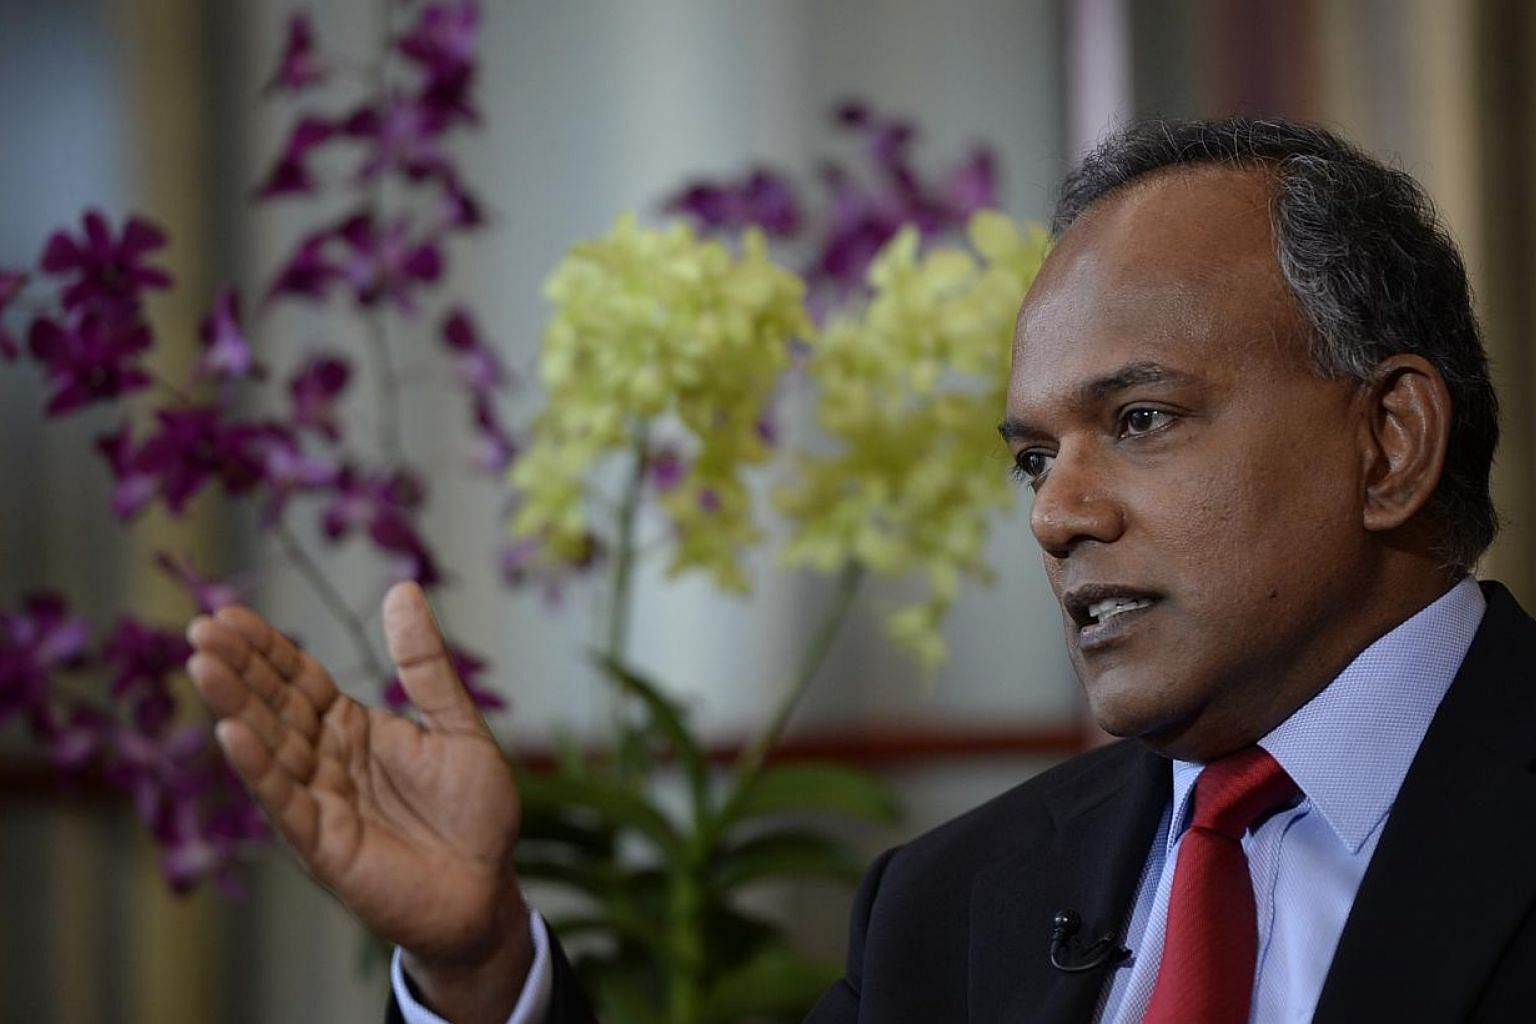 Foreign Minister K. Shanmugam (above) has welcomed as constructive his Indonesian counterpart's stance that there was no ill will or malice intended in Indonesia's naming of a warship after two marines who carried out a bombing in Orchard Road that k